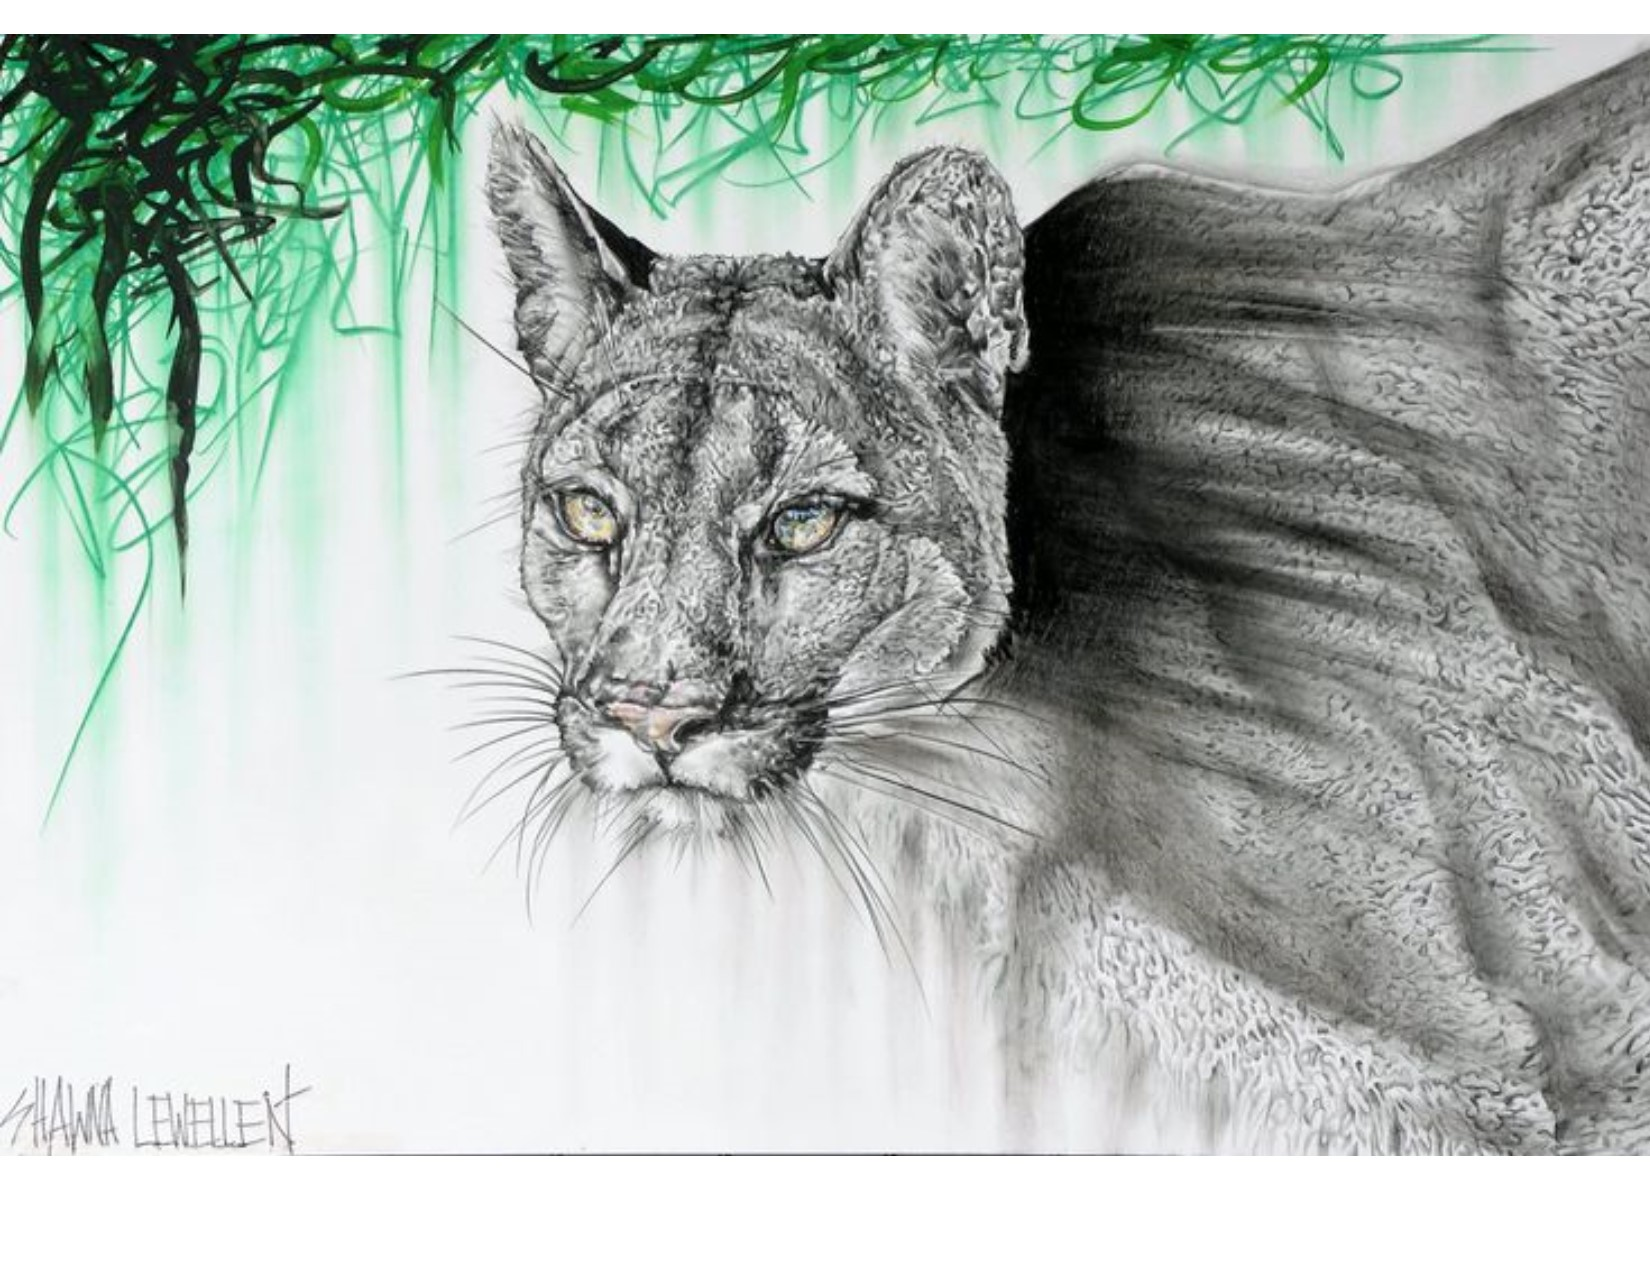 Lurking Cougar artwork by Shawna Lewellen - art listed for sale on Artplode